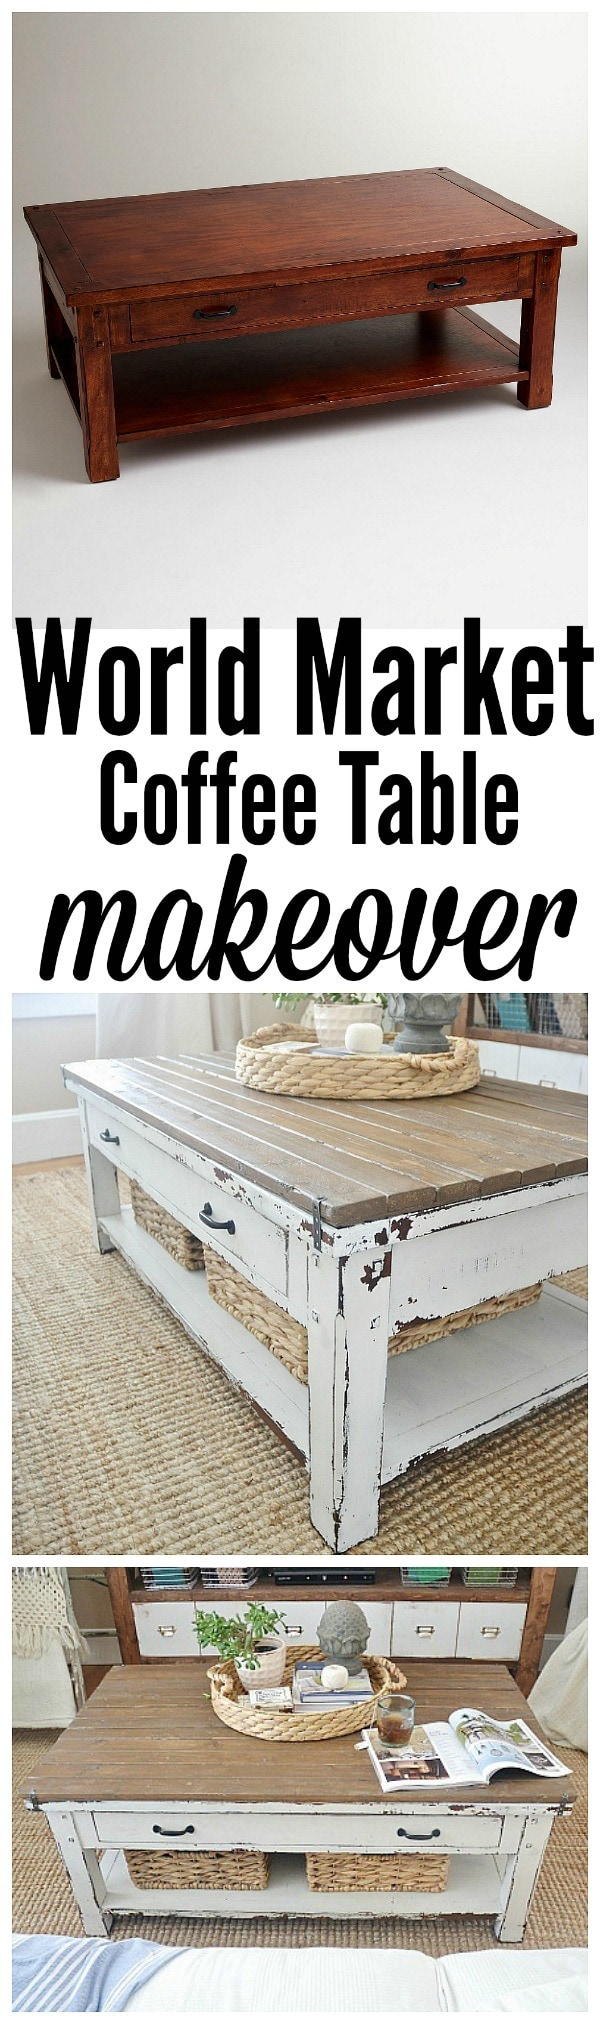 World market coffee table makeover - so simple & such a dramatic change!